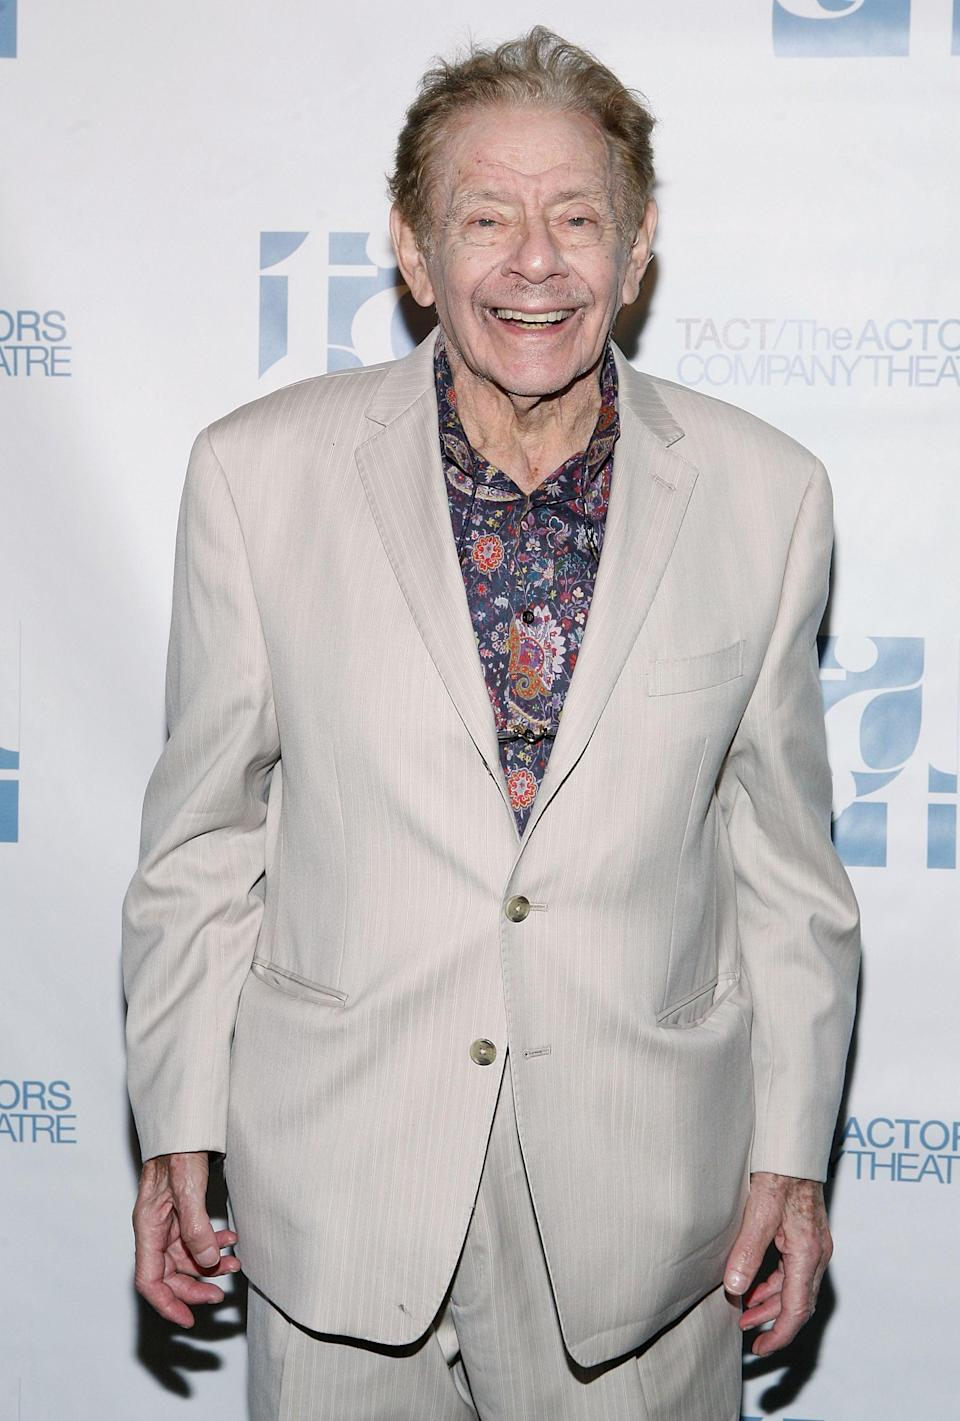 "<p>The actor, whose memorable roles include those on <strong>Seinfeld</strong> and <strong>The King of Queens</strong>, <a href=""https://www.popsugar.com/celebrity/jerry-stiller-dead-47460162"" class=""link rapid-noclick-resp"" rel=""nofollow noopener"" target=""_blank"" data-ylk=""slk:died from natural causes in May"">died from natural causes in May</a>. His son, <a class=""link rapid-noclick-resp"" href=""https://www.popsugar.com/Ben-Stiller"" rel=""nofollow noopener"" target=""_blank"" data-ylk=""slk:Ben Stiller"">Ben Stiller</a>, confirmed the news writing, ""I'm sad to say that my father, Jerry Stiller, passed away from natural causes. He was a great dad and grandfather, and the most dedicated husband to Anne for about 62 years. He will be greatly missed. Love you Dad."" He was 92. </p>"